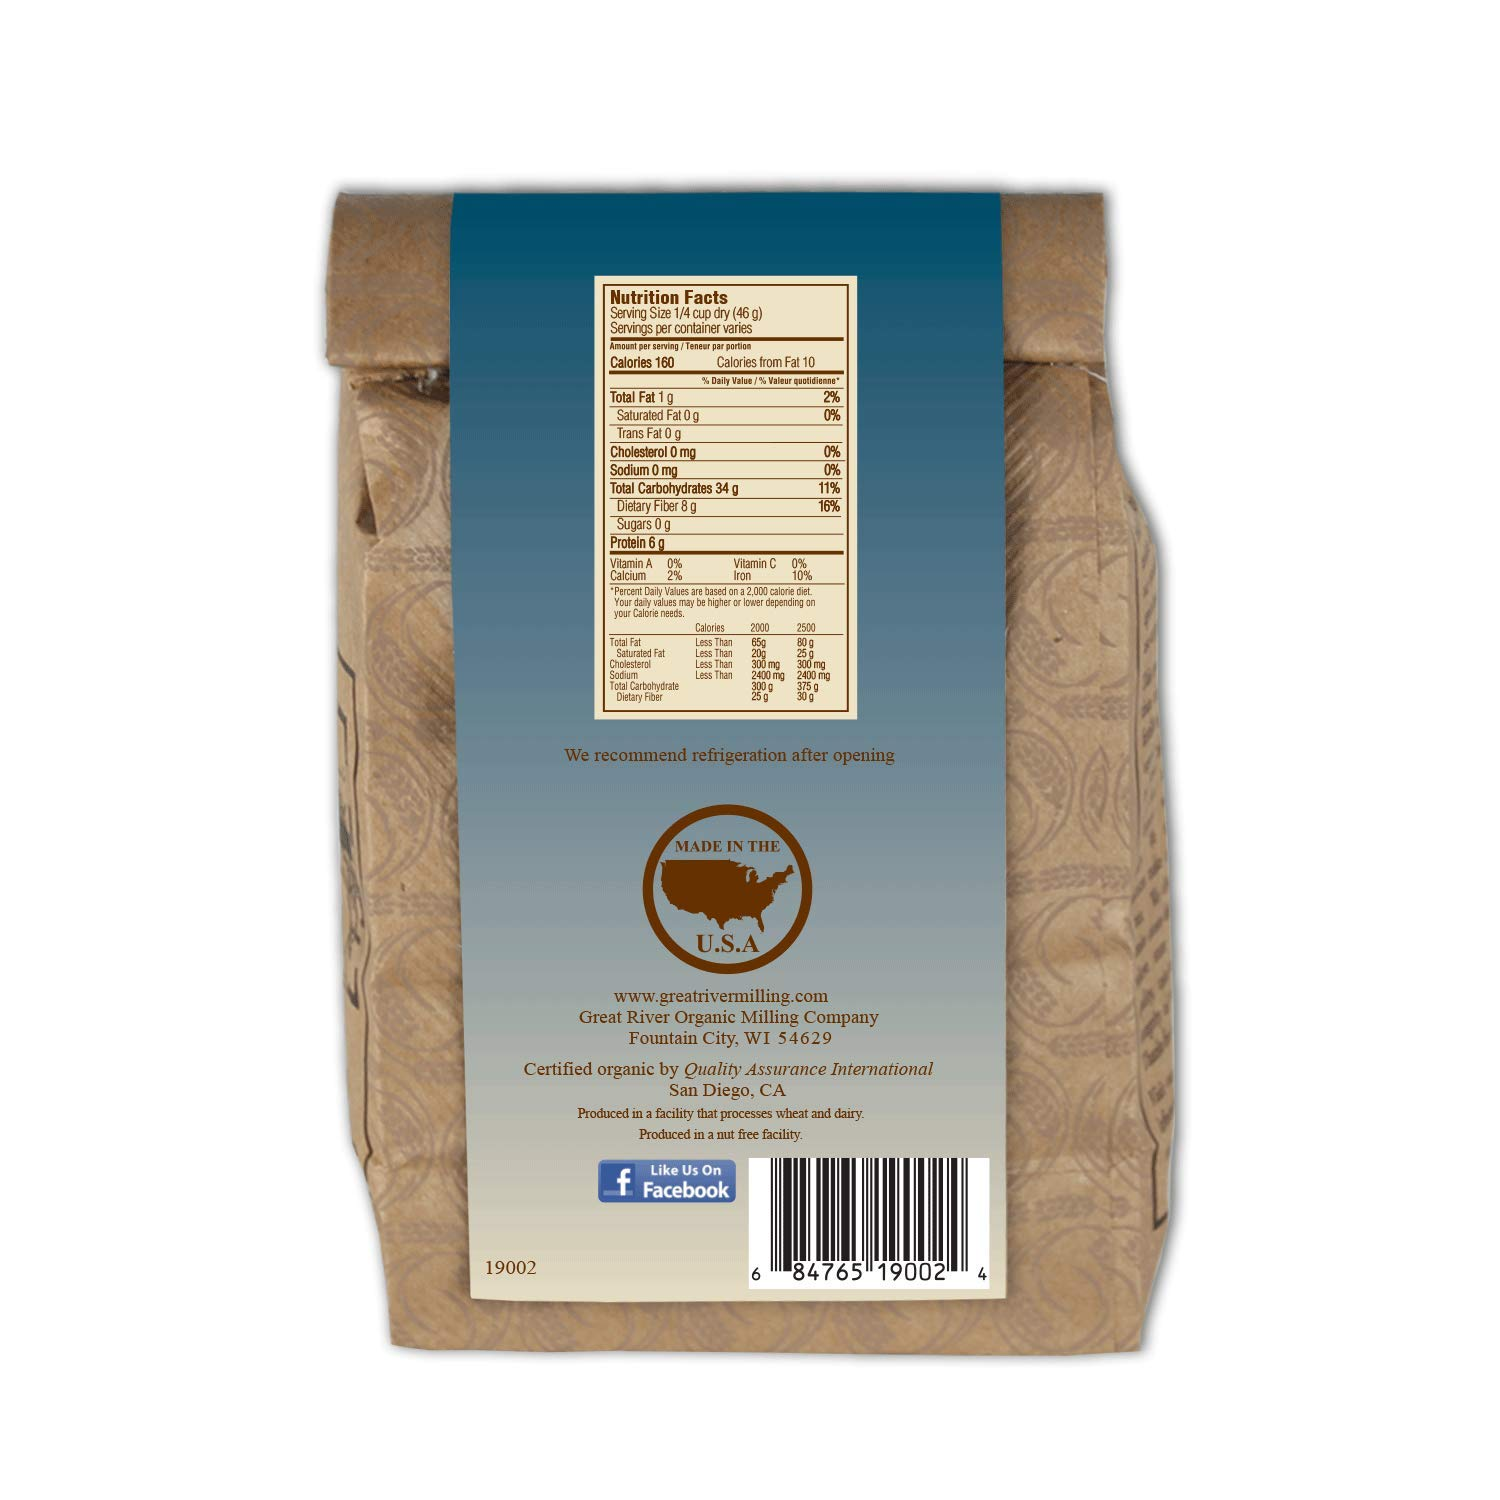 Great River Organic Milling Organic Barley Flour, 2 Pound(Pack of 4) by Great River Organic Milling (Image #2)